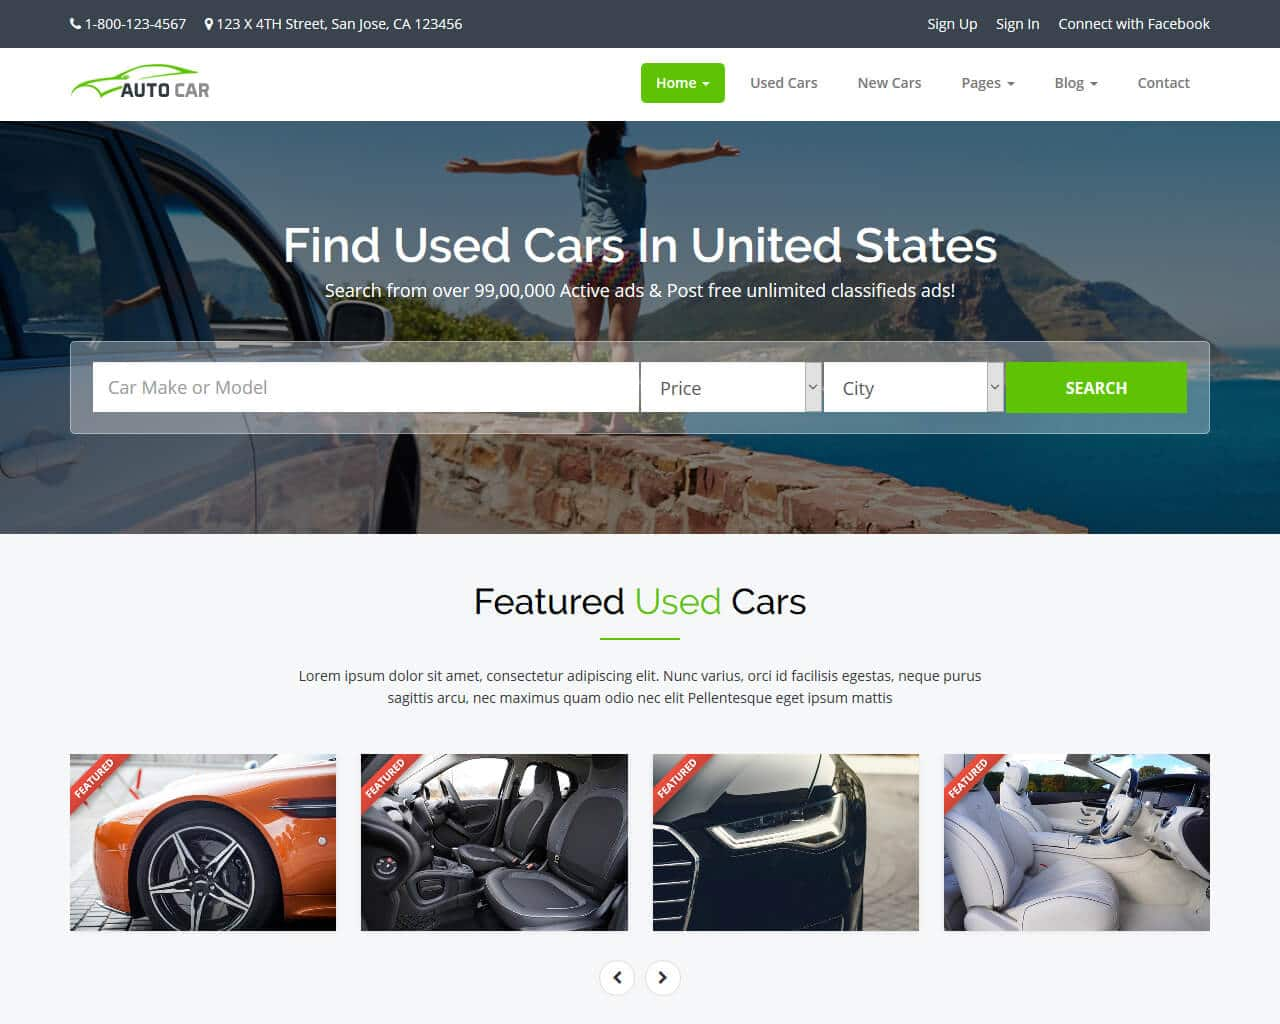 20+ Stunning Automotive & Cars Website Templates 2020